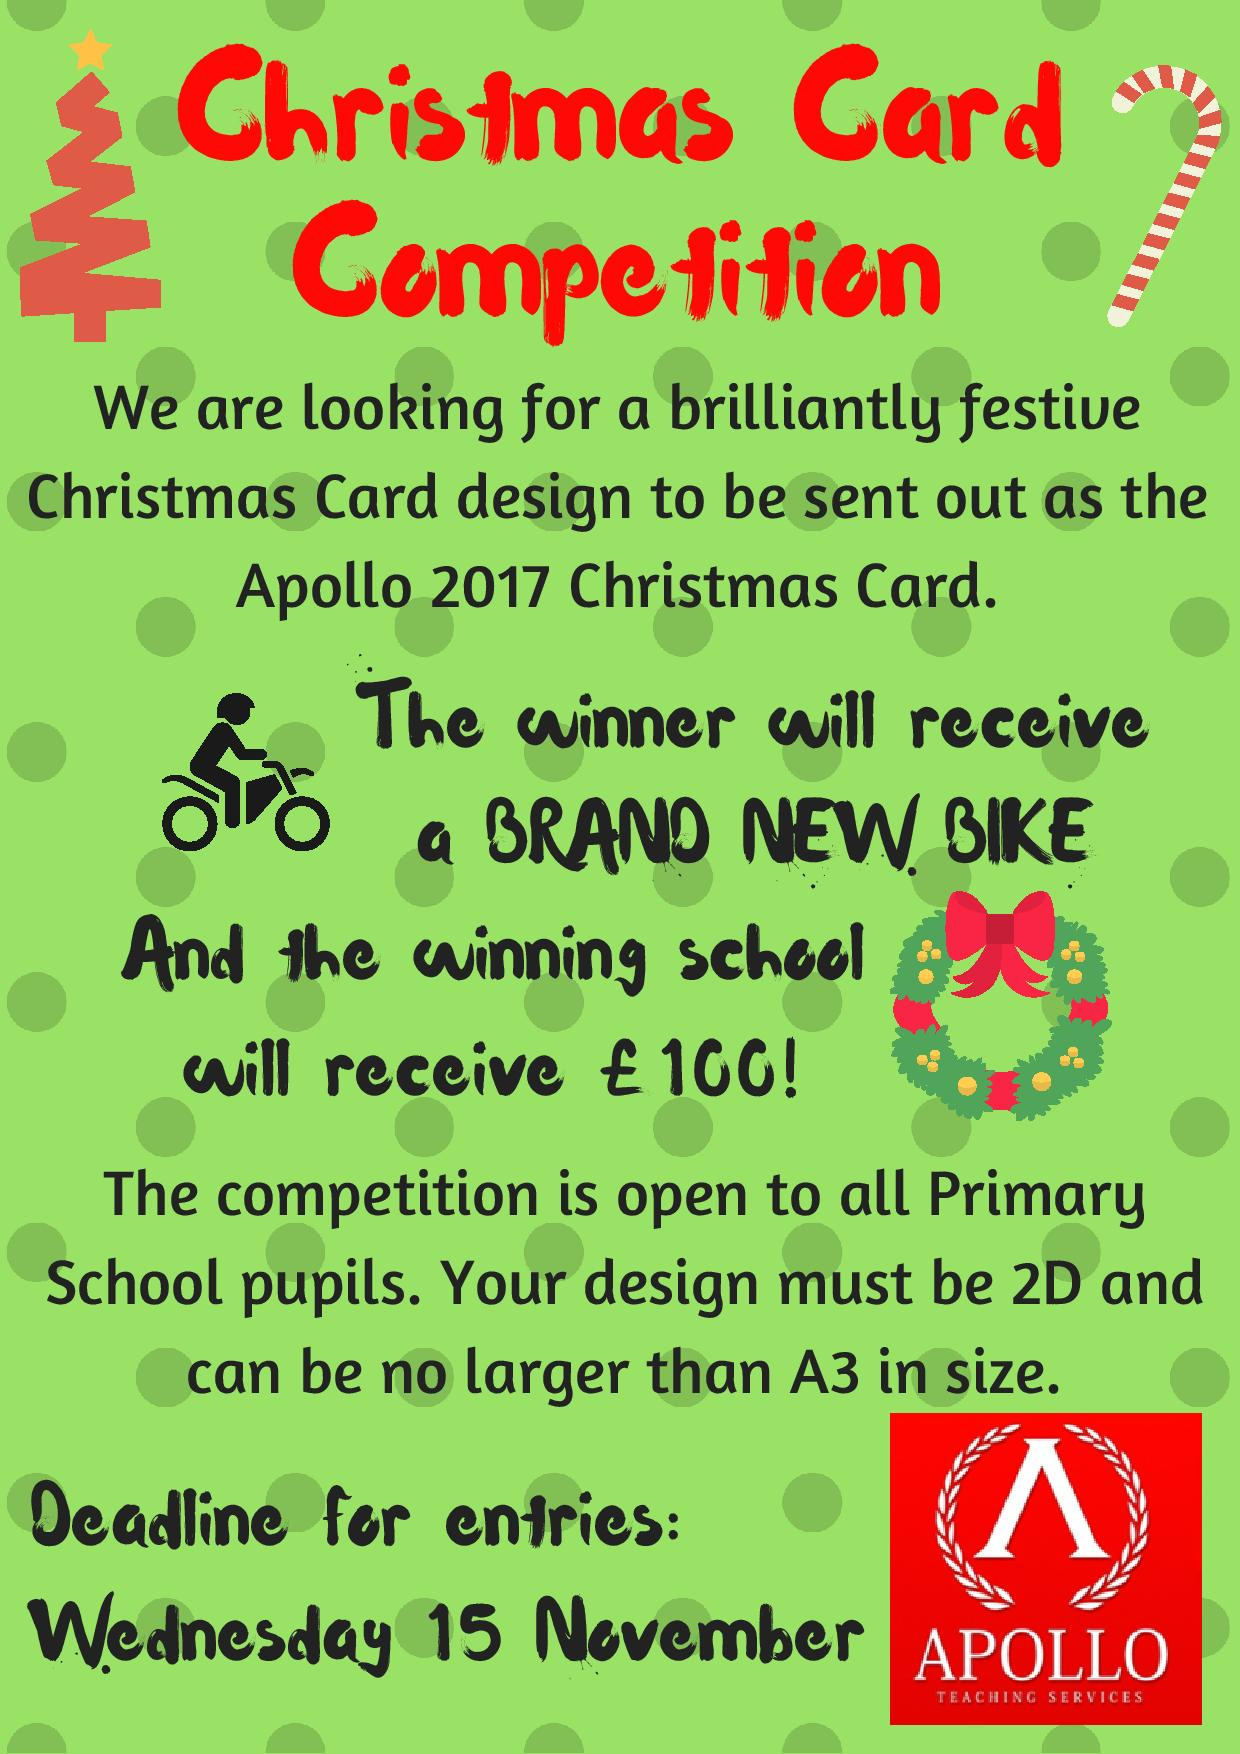 Christmas Card Competition Poster